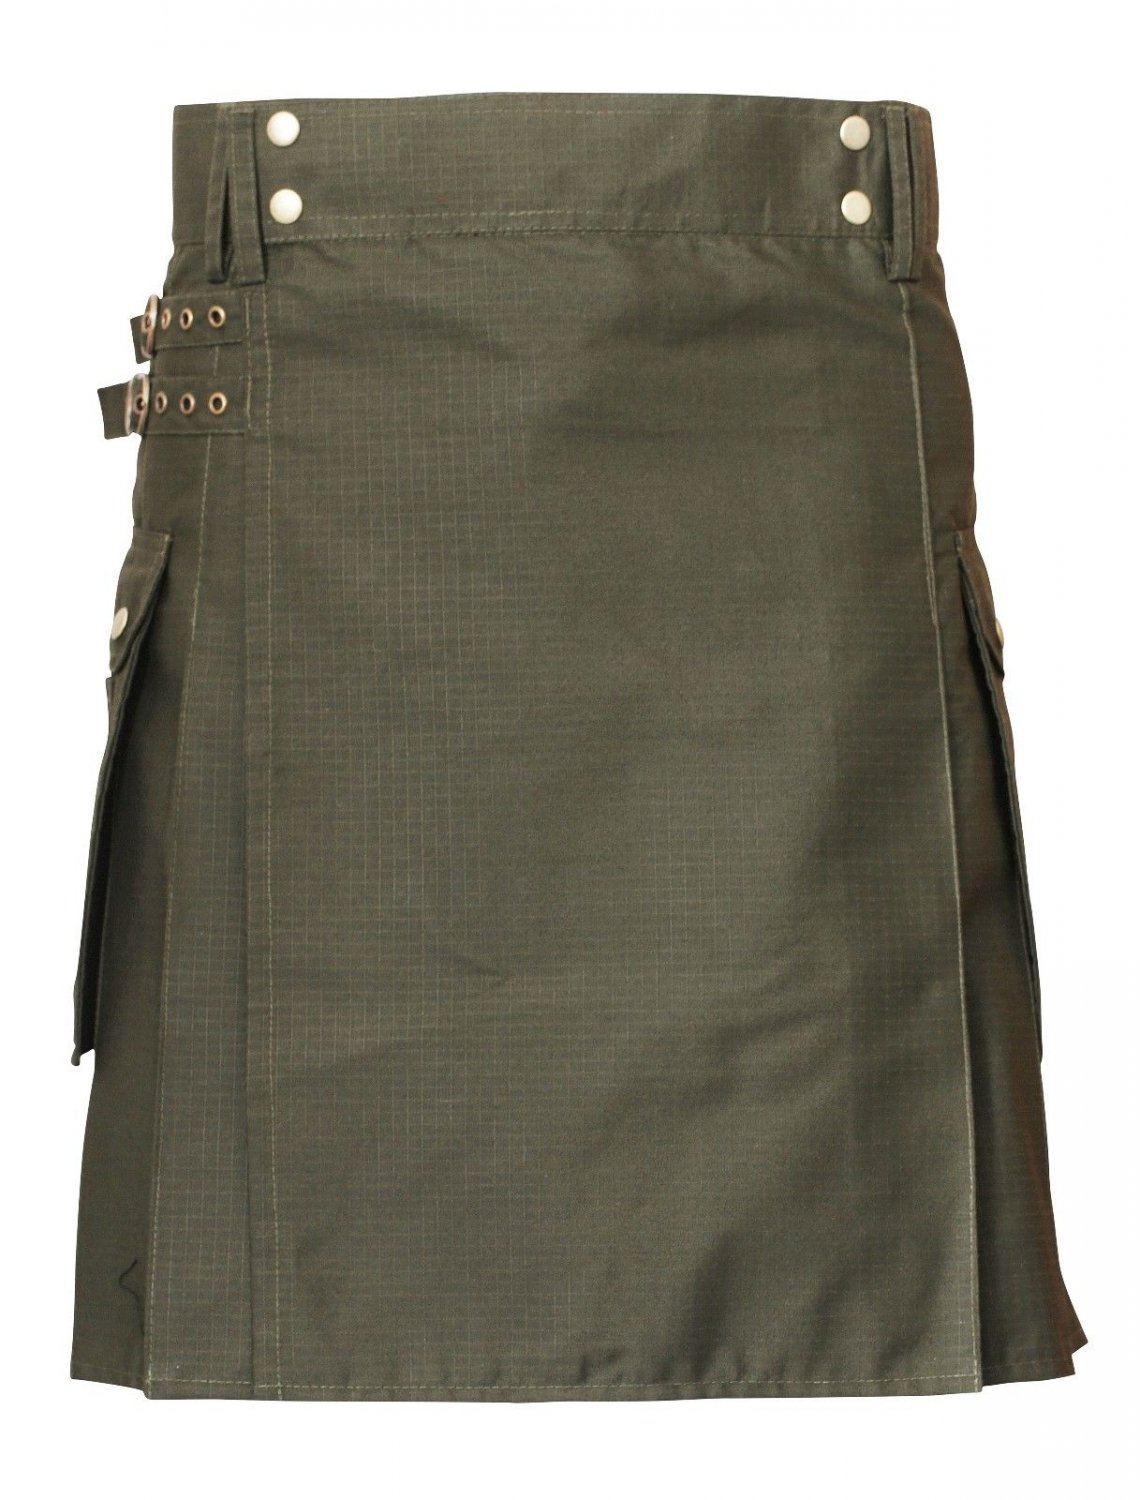 38 Size Traditional Scottish Utility Heavy Rip Stop Cotton Kilt Olive Green Cotton Deluxe Kilt